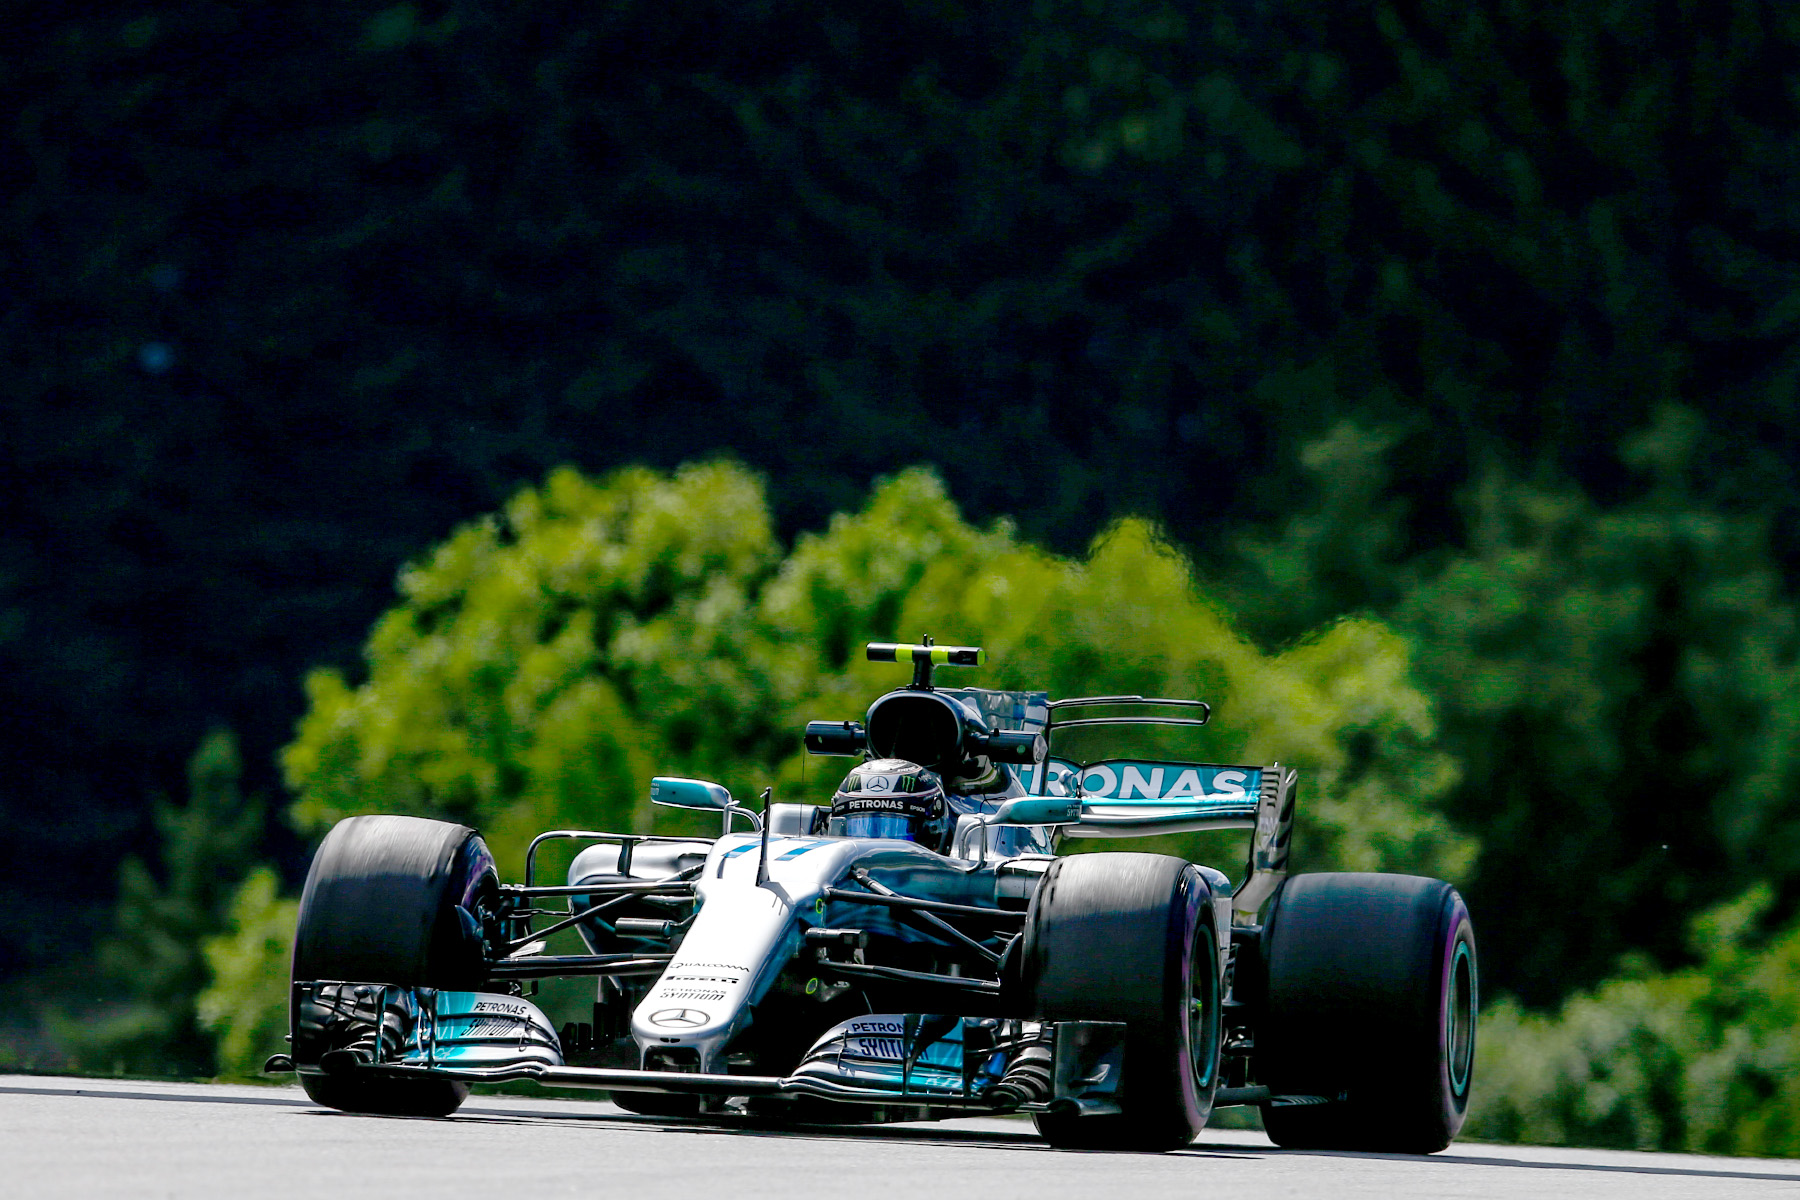 Valtteri Bottas in his Mercedes at Austria's Red Bull Ring.